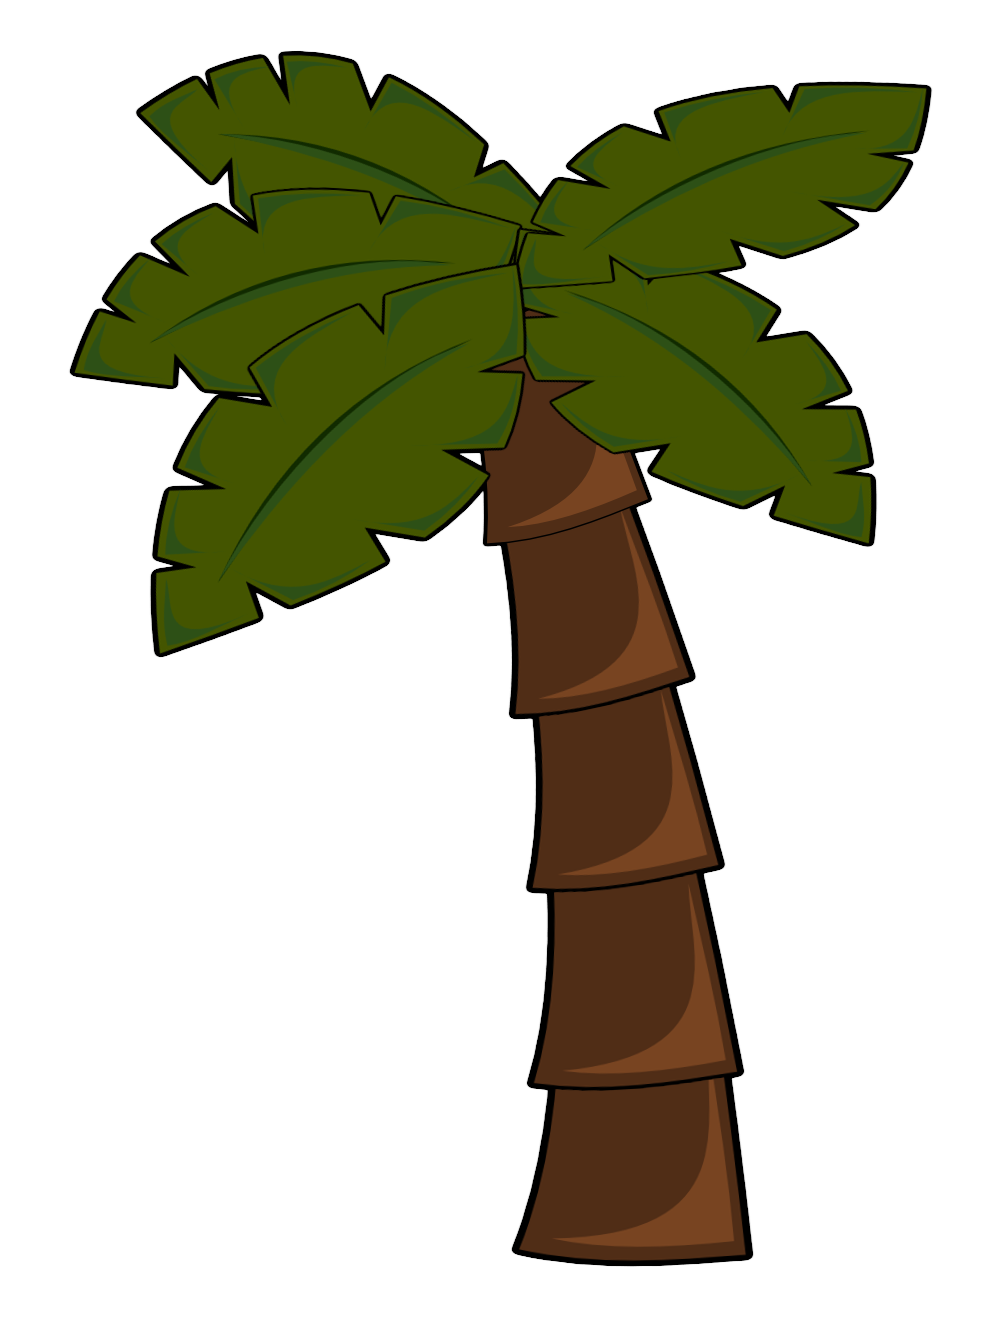 Brown tree trunk clipart image library download Clipart palm tree sunset party - ClipartFest image library download